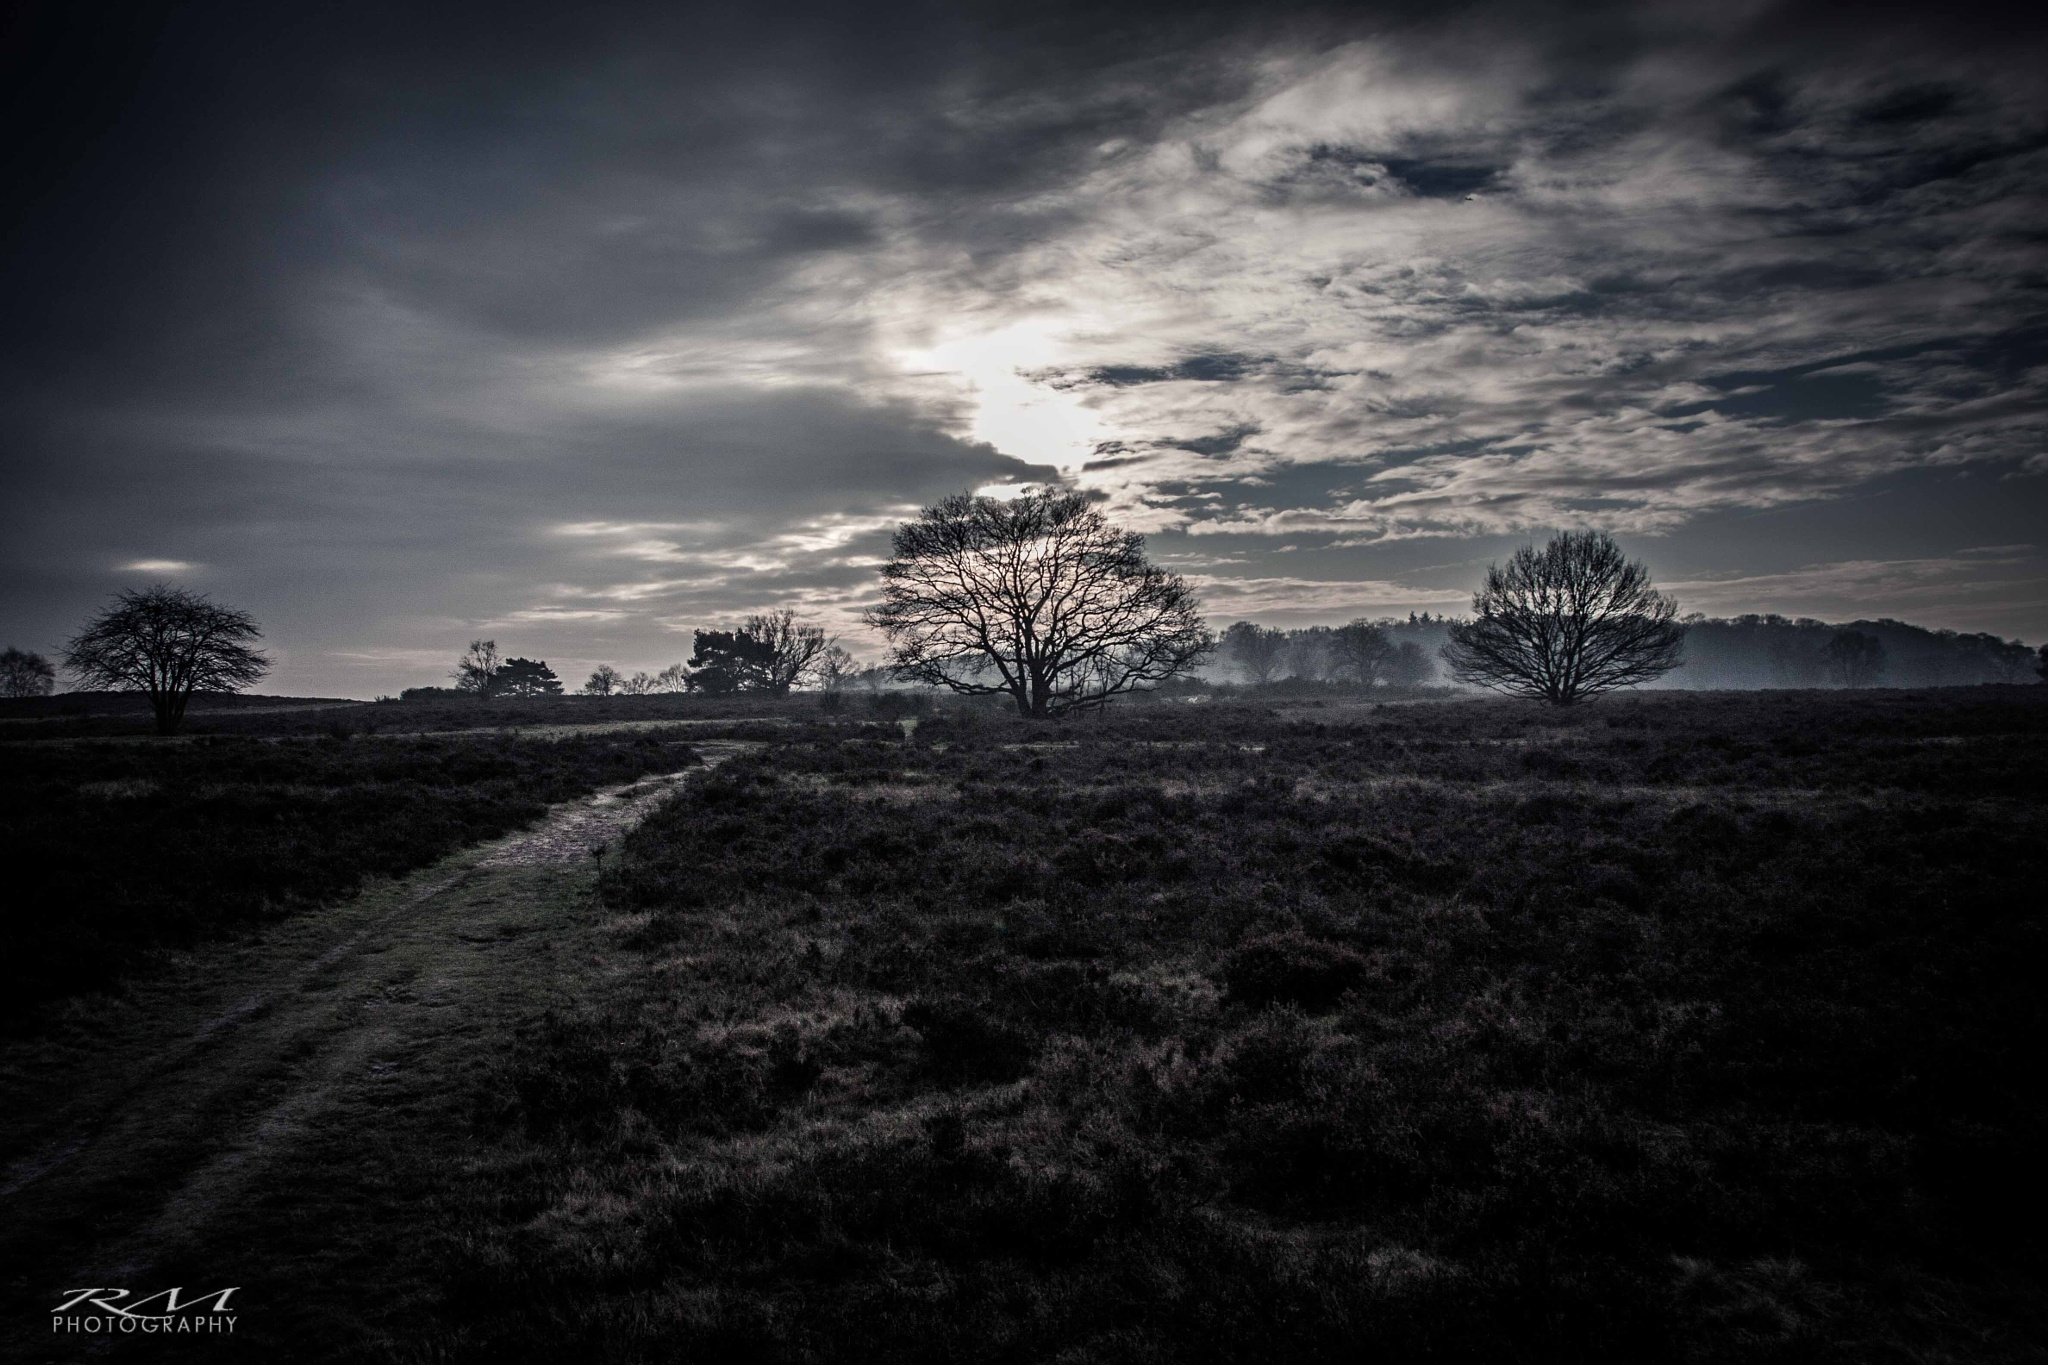 Hoorneboegse Heide, Hilversum by RM Photography